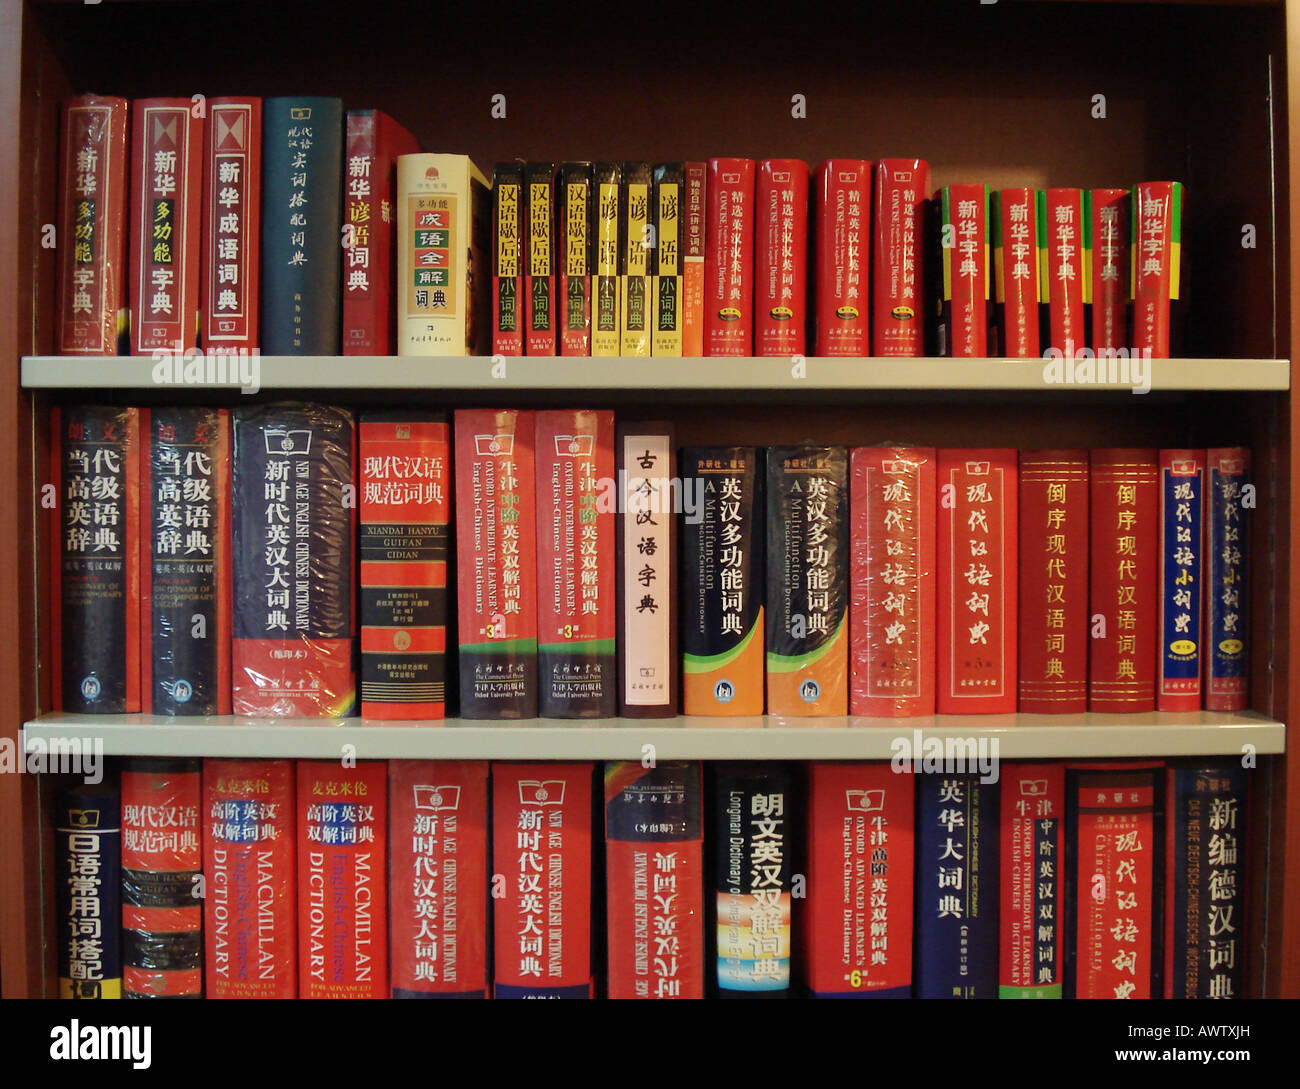 Bookshelf Full Of Chinese Language Books In China